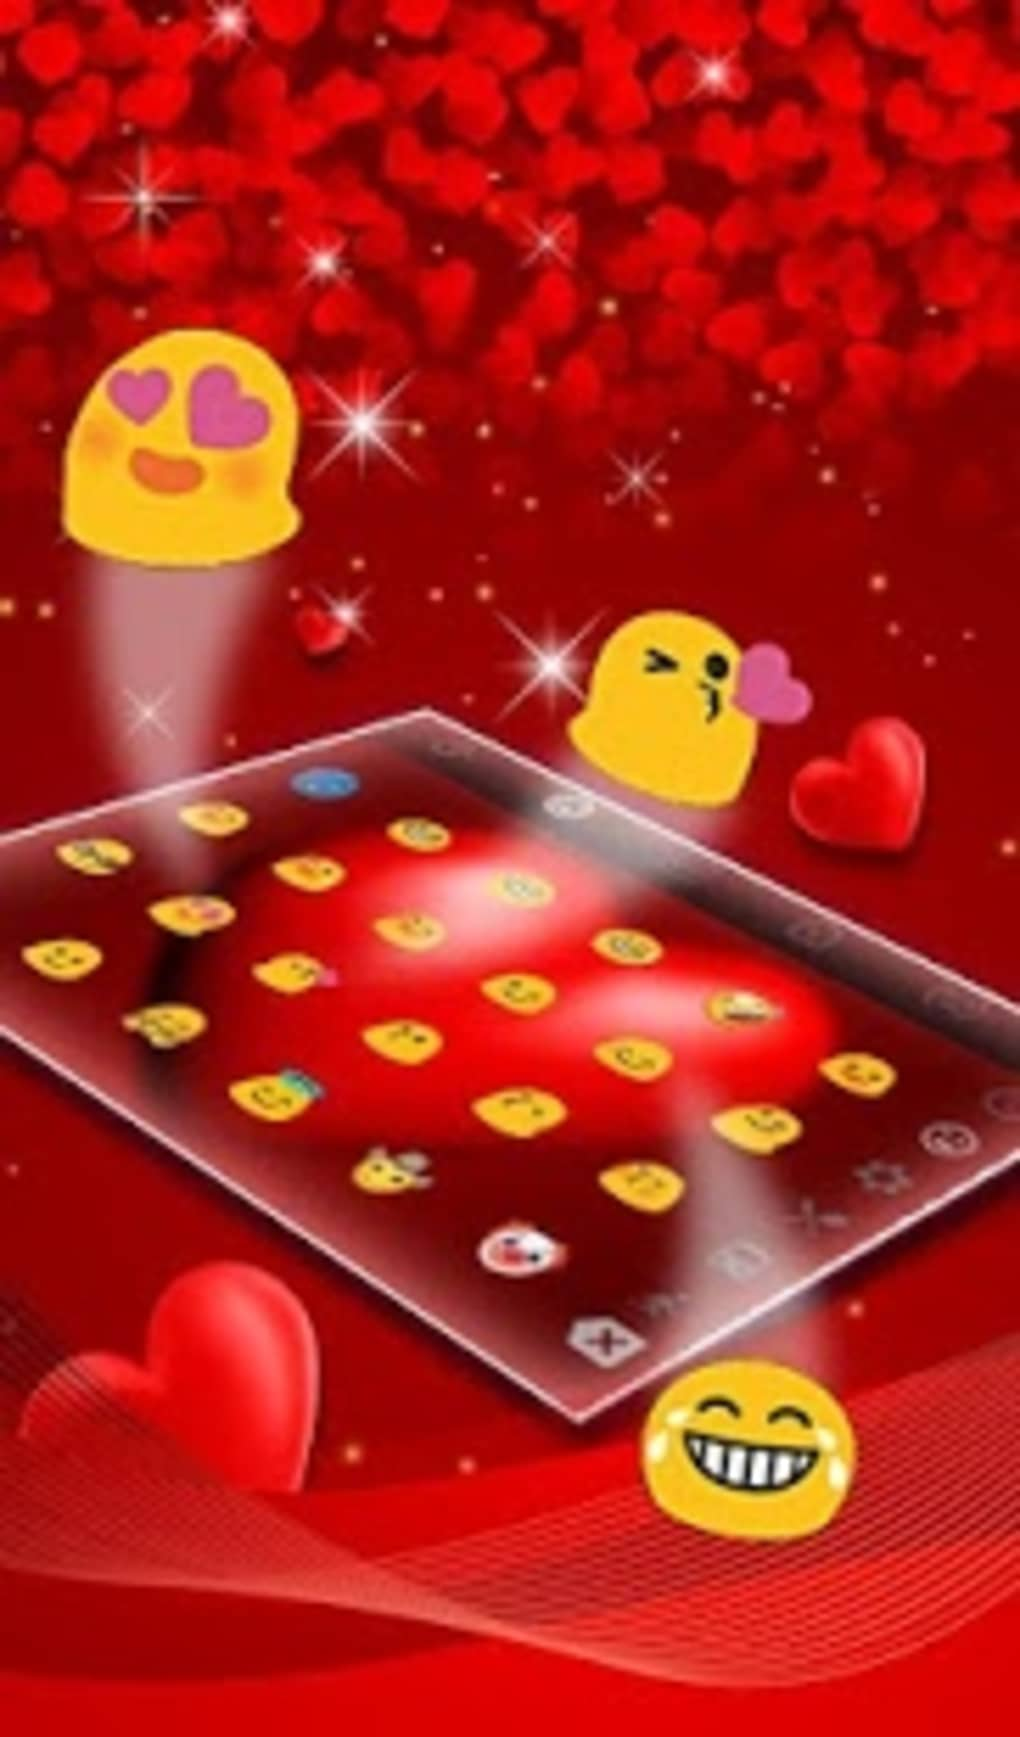 Live Floating Love Heart Valentine Keyboard Theme for